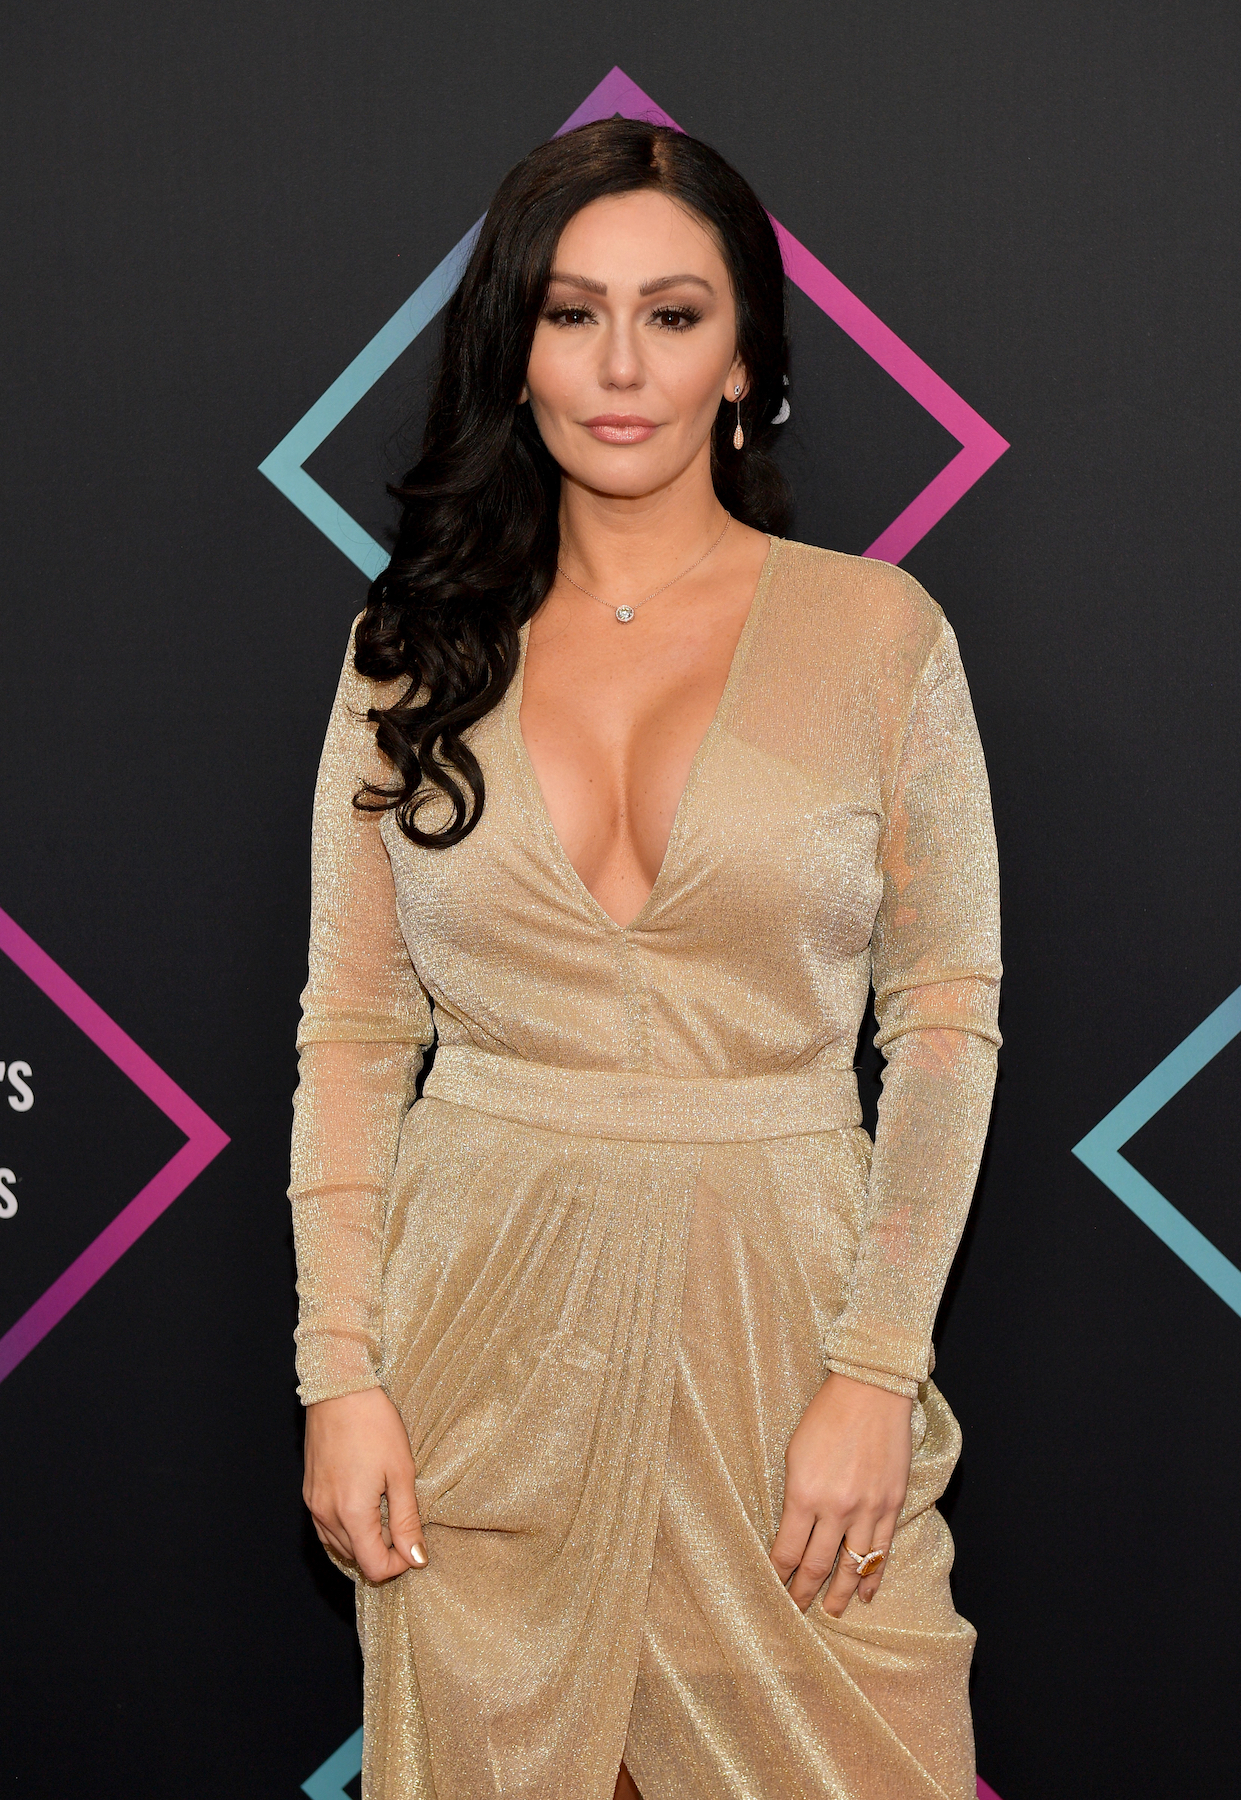 Jenni 'JWoww' Farley Shares Photo on Date With Mystery Man: She's 'Moved On' - Jenni 'JWoww' Farley attends the People's Choice Awards 2018 at Barker Hangar on November 11, 2018 in Santa Monica, California.